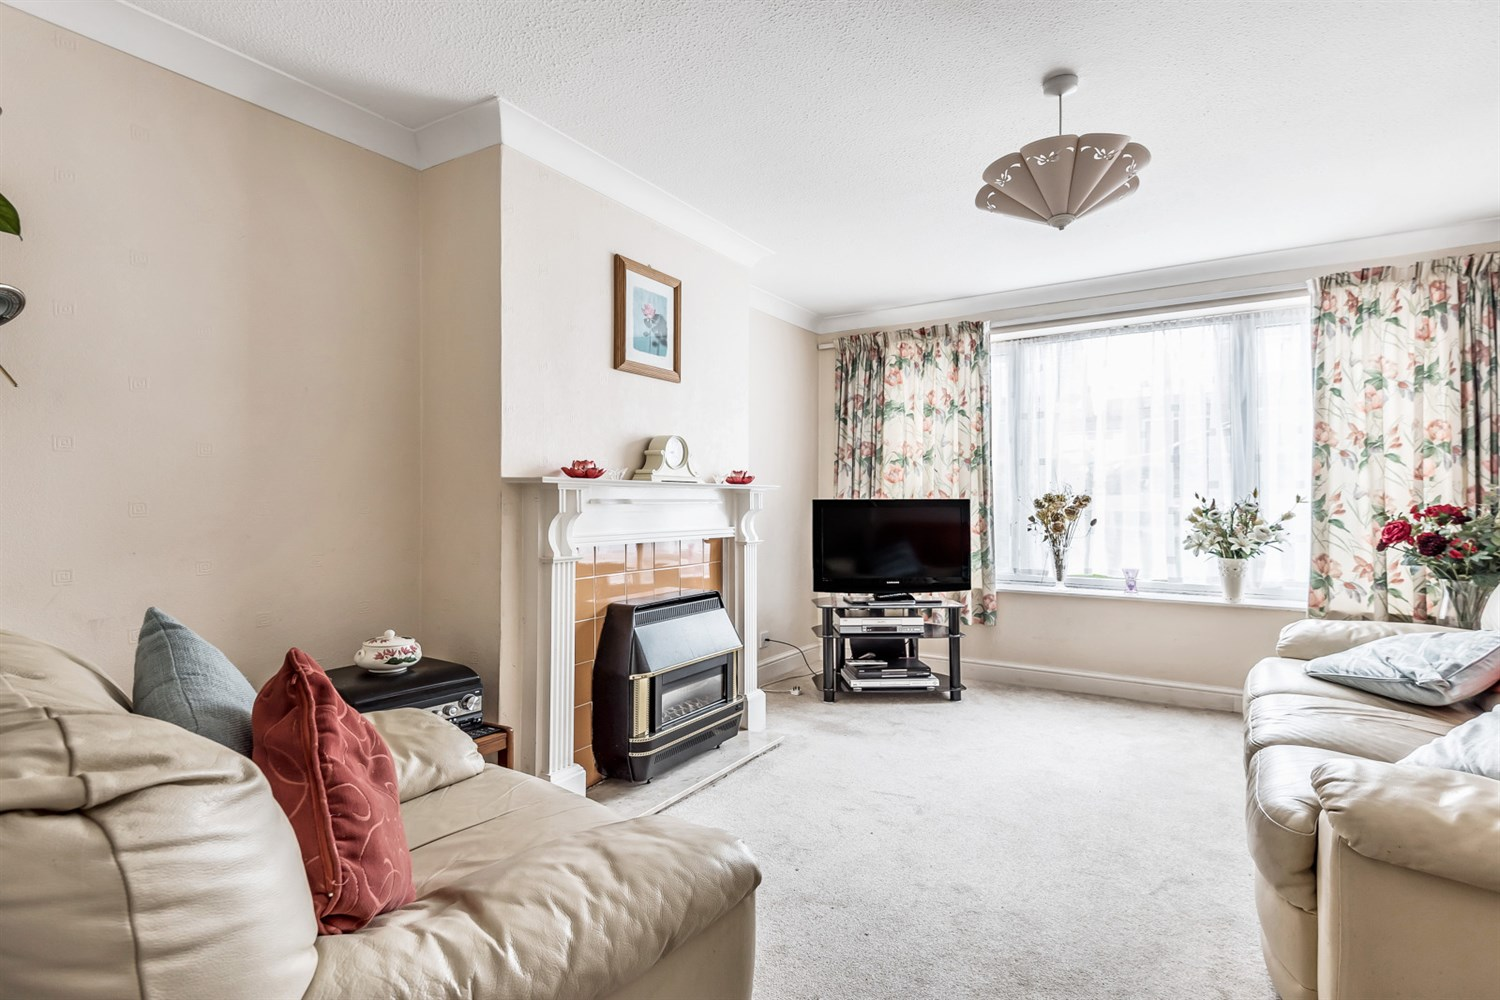 Tintern Crescent, Reading, RG1 6HB